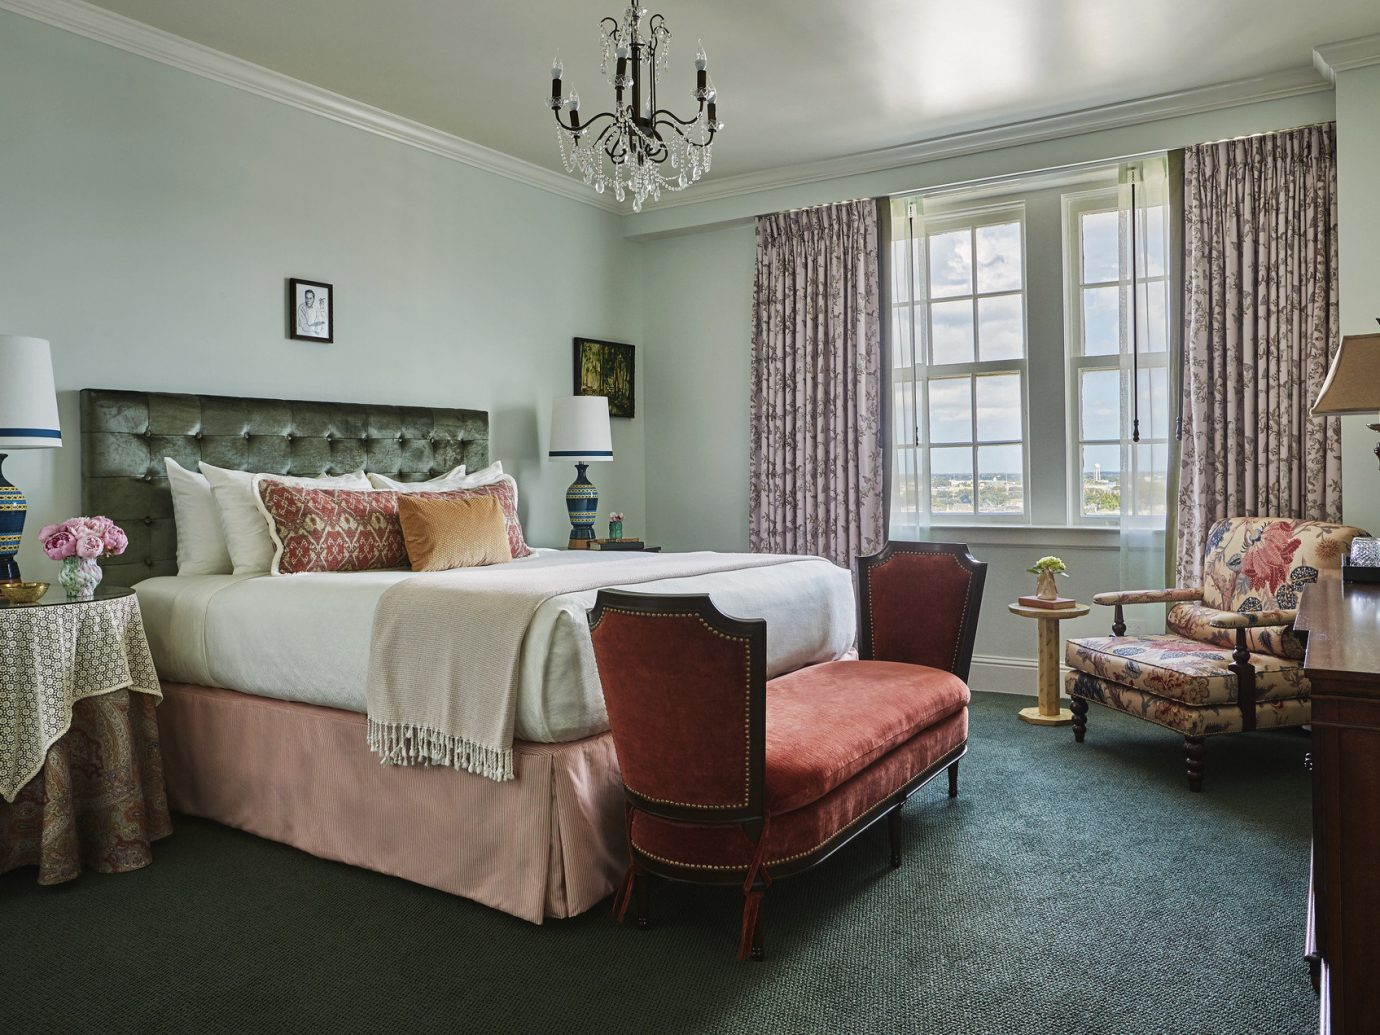 bed Bedroom Boutique Hotels city views Elegant extravagant fancy Hotels Luxury natural light regal sophisticated Trip Ideas view window indoor floor room wall living room property home house ceiling interior design estate real estate cottage hotel apartment furniture condominium area decorated